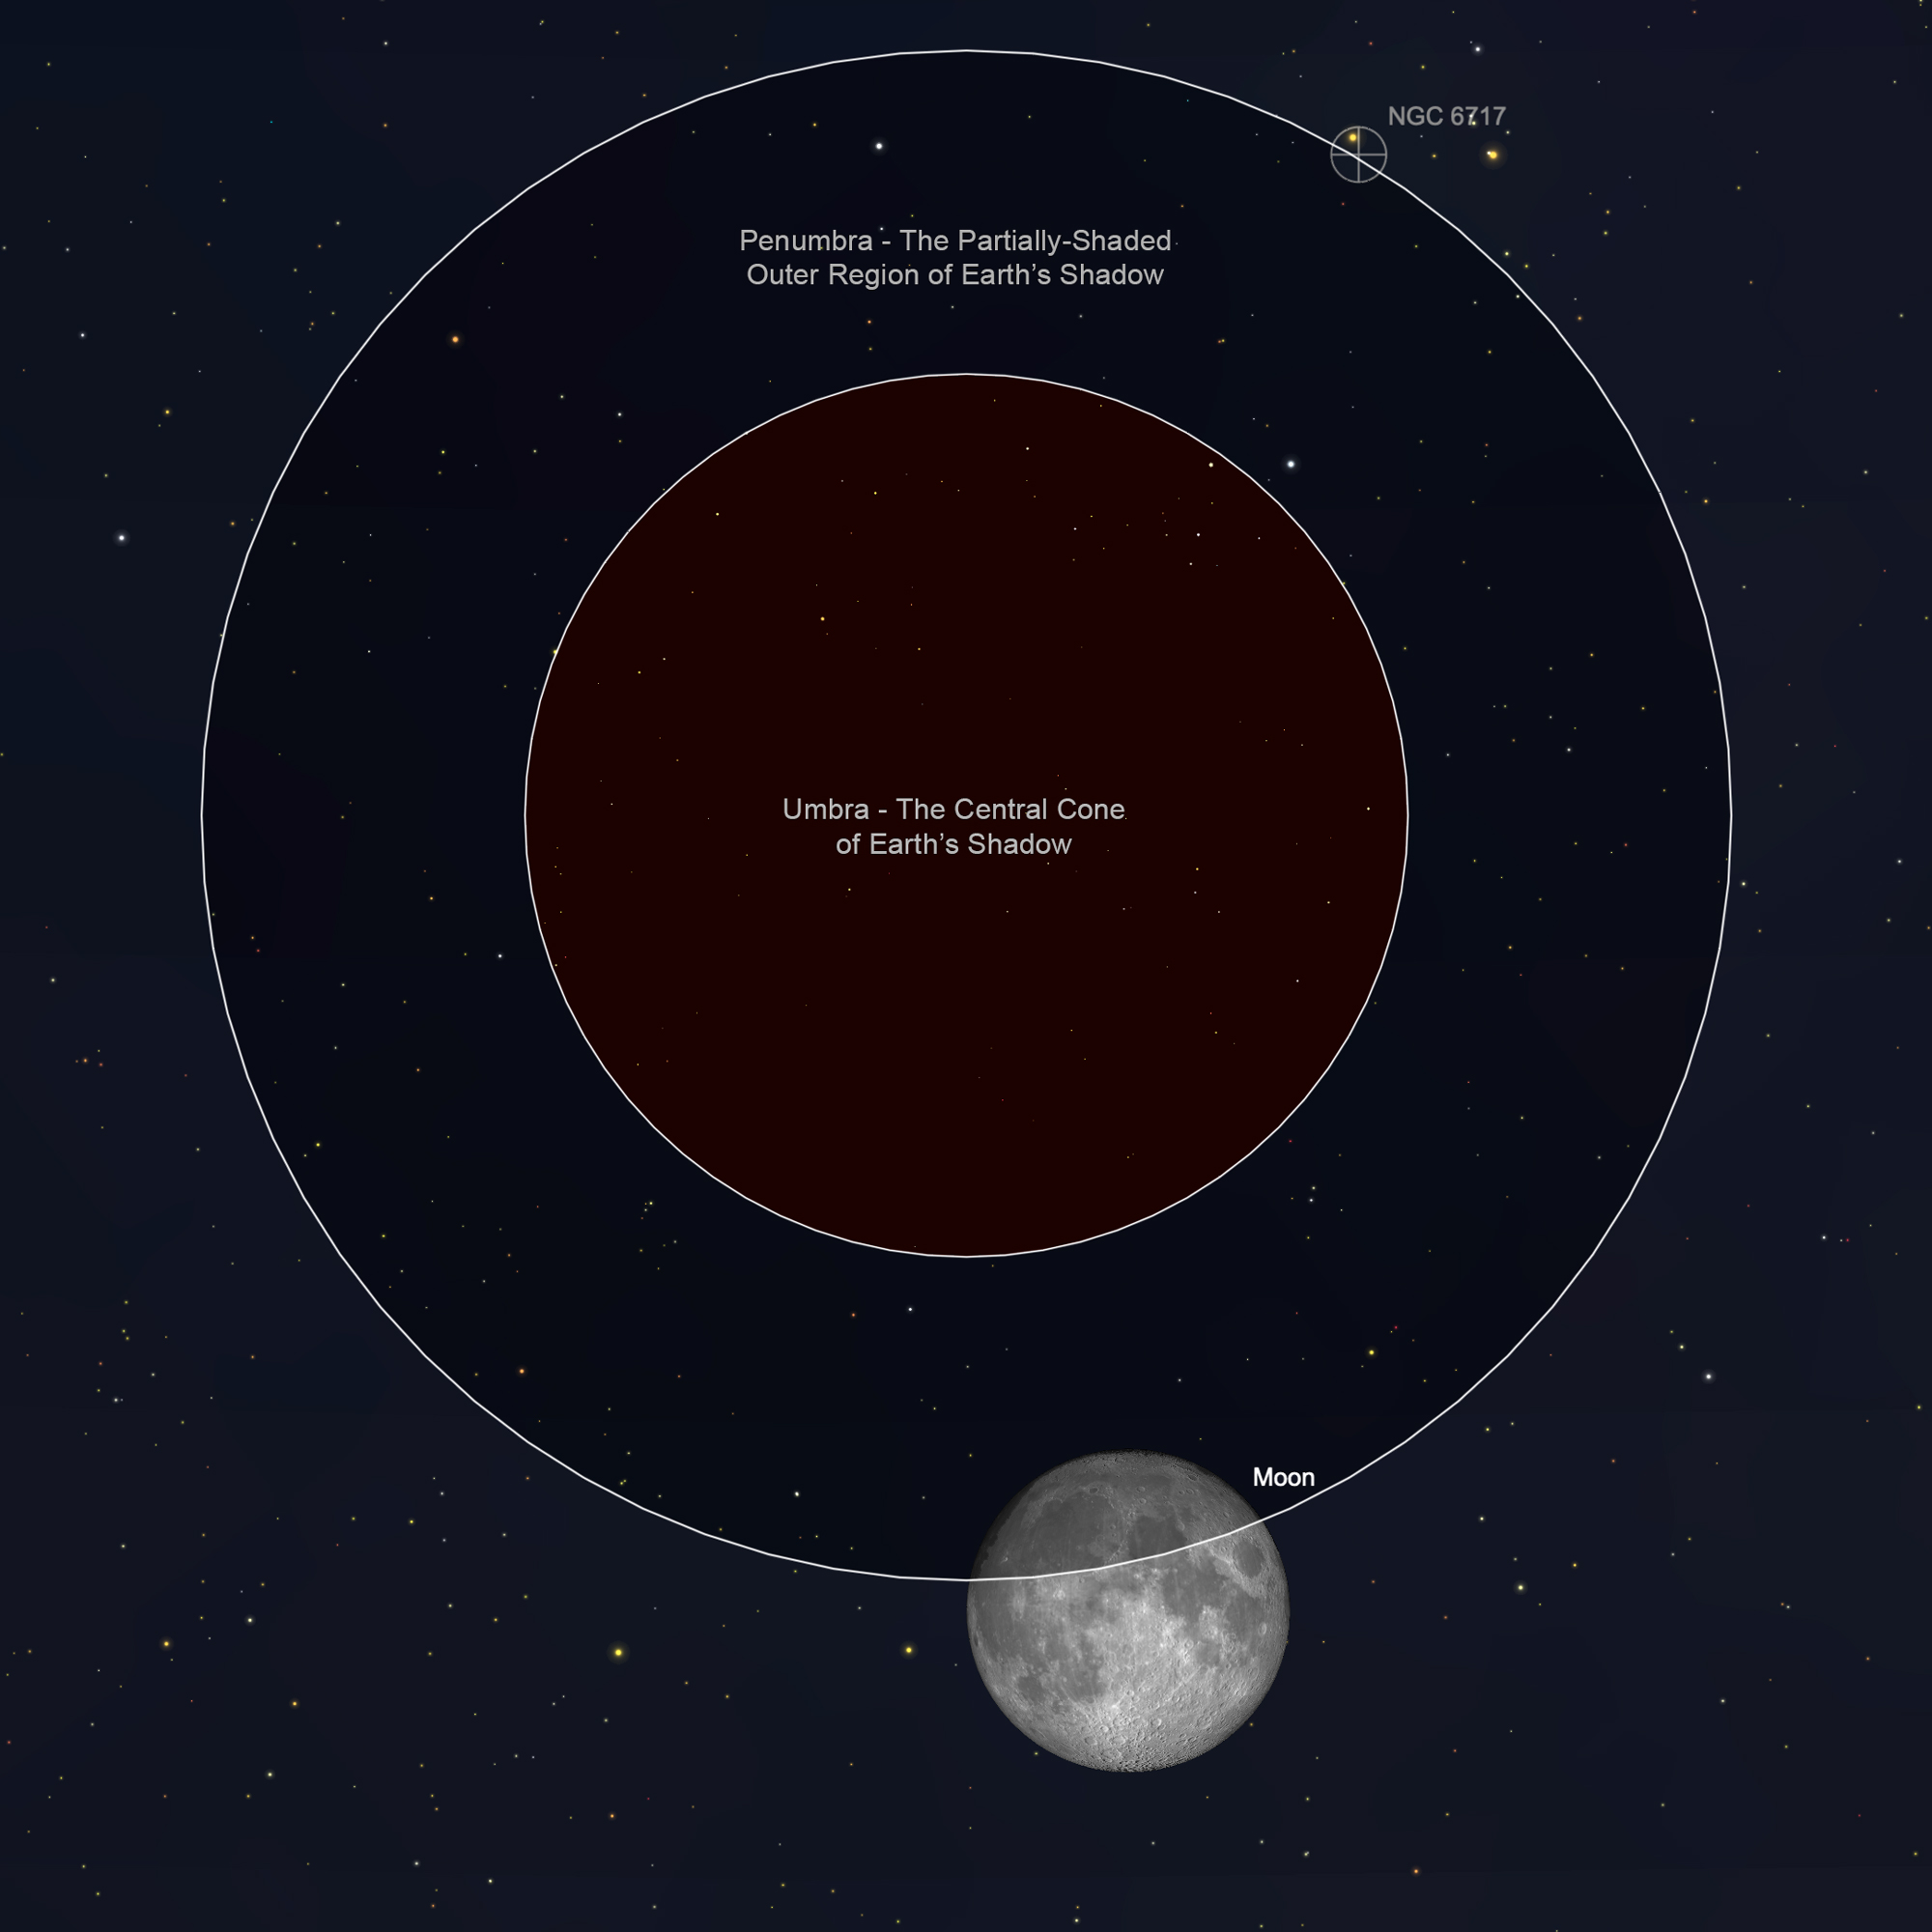 Illustration of Earth's Umbra and Penumbra with Moon Positioned for Penumbral Eclipse.